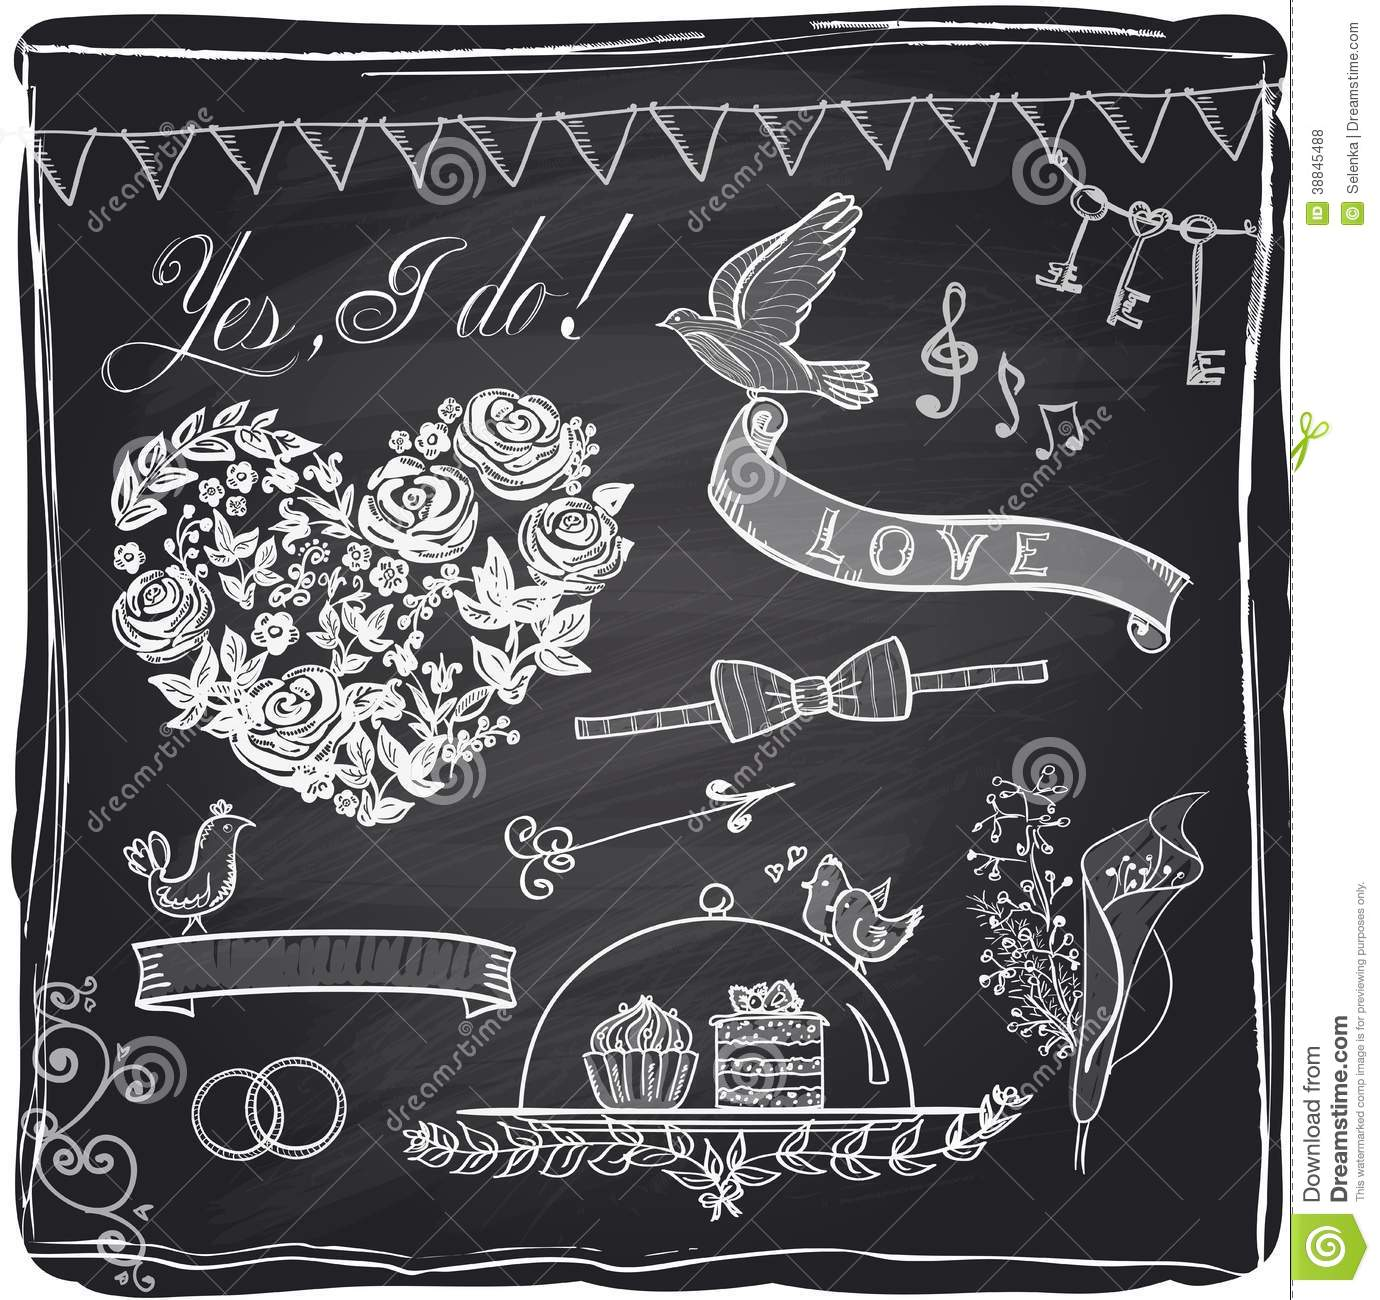 Chalk Wedding Hand Drawn Graphic Set: Drawn Chalkboard Wedding Ring At Reisefeber.org